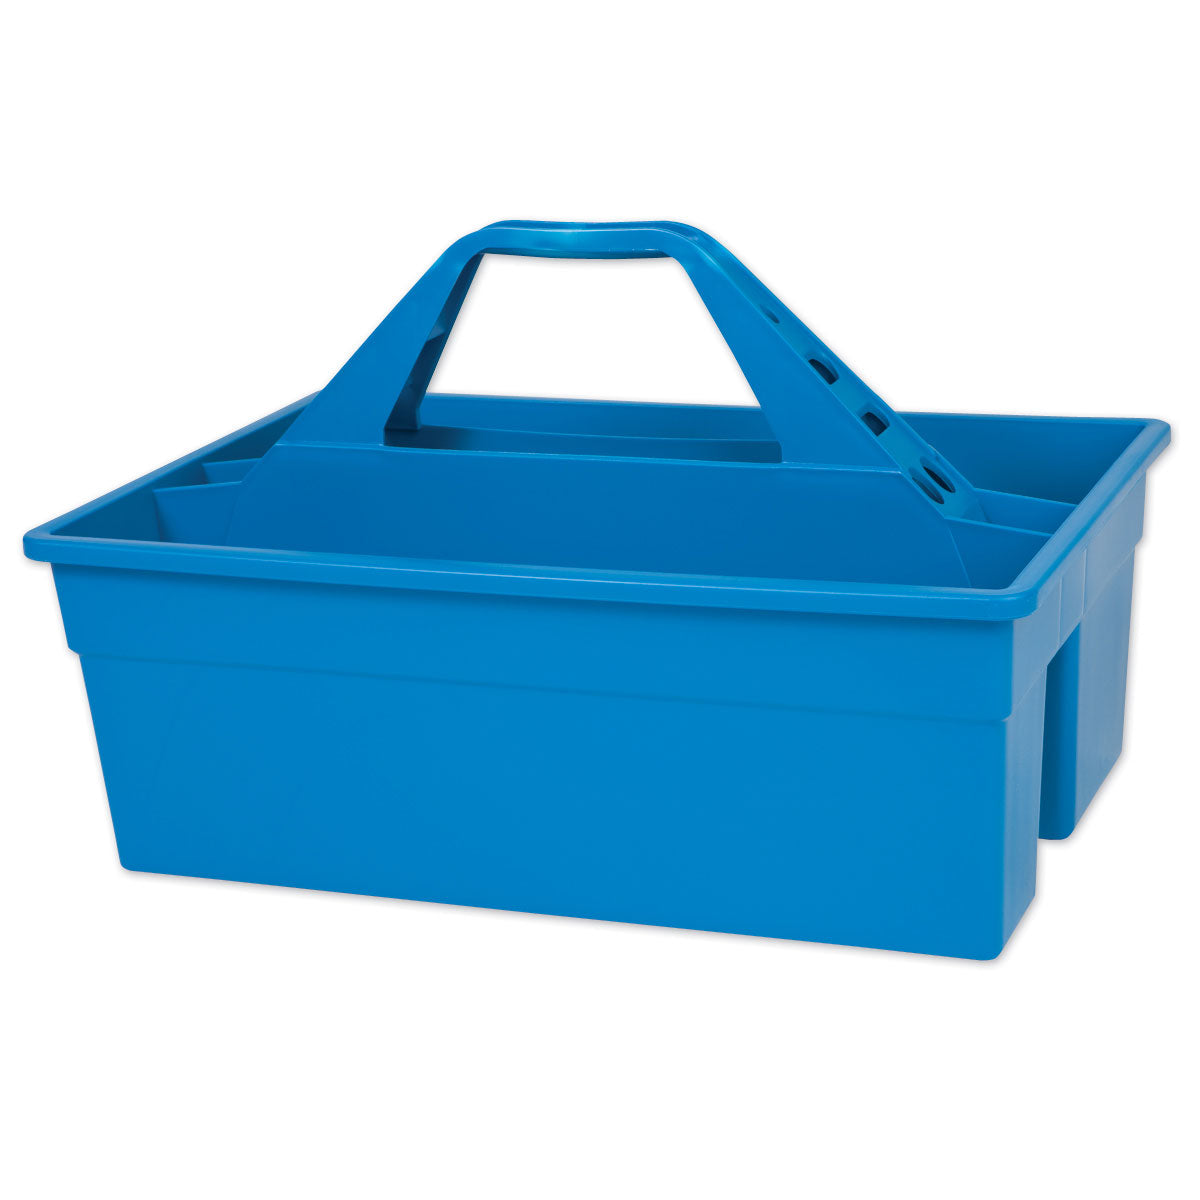 Blue Plastic Tote Caddy